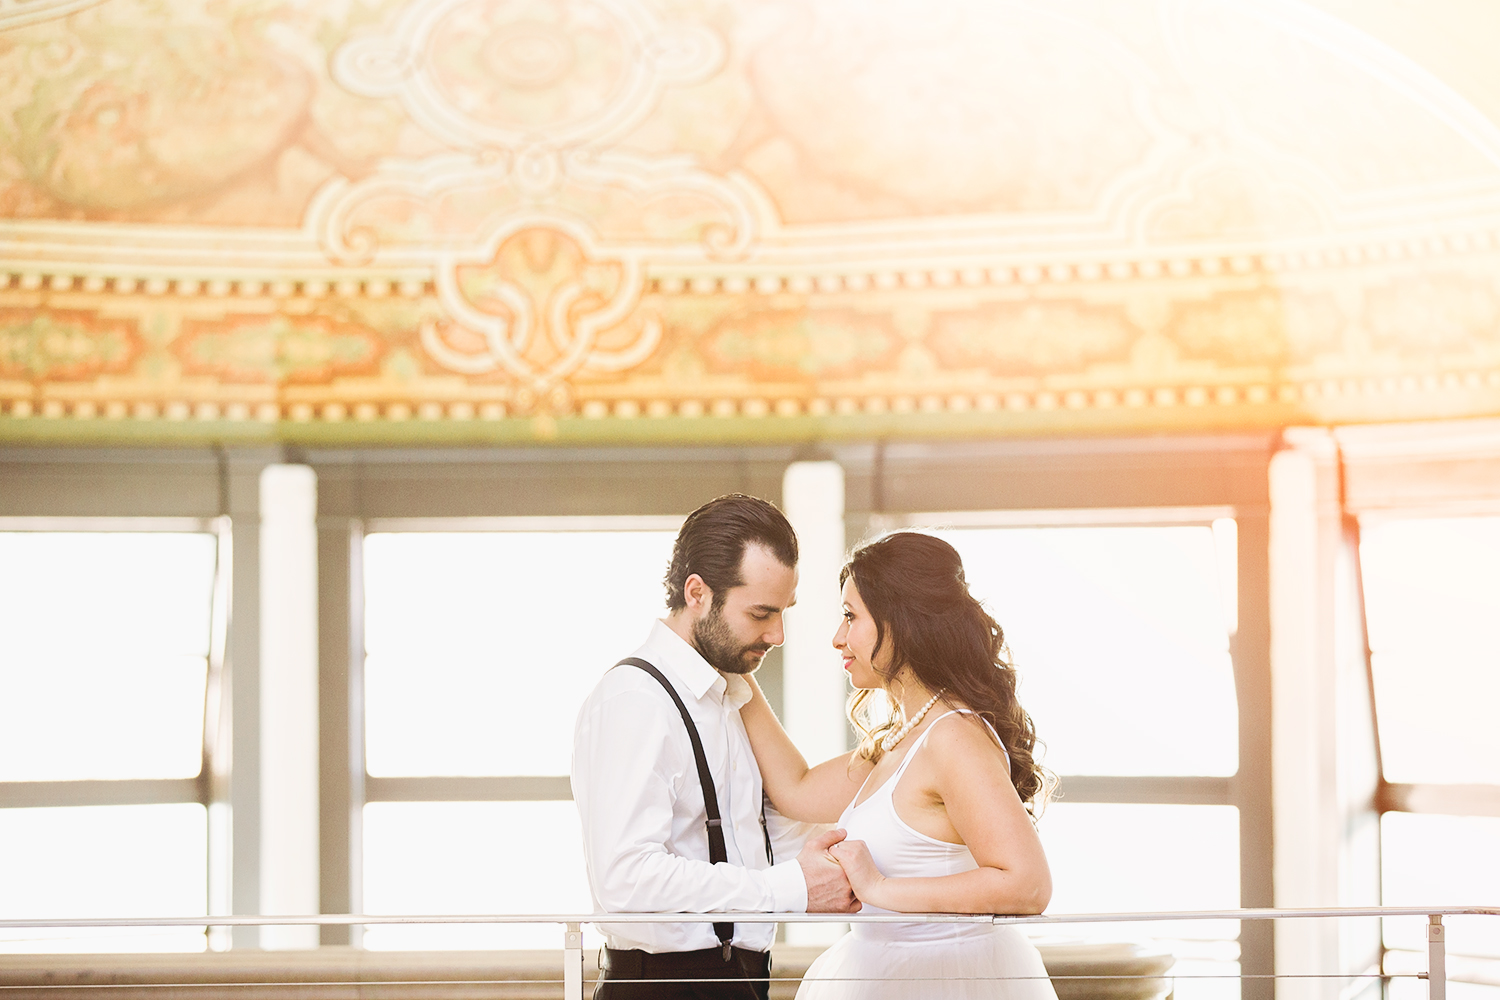 los-angeles-wedding-photographer-casey-brodley_11.jpg